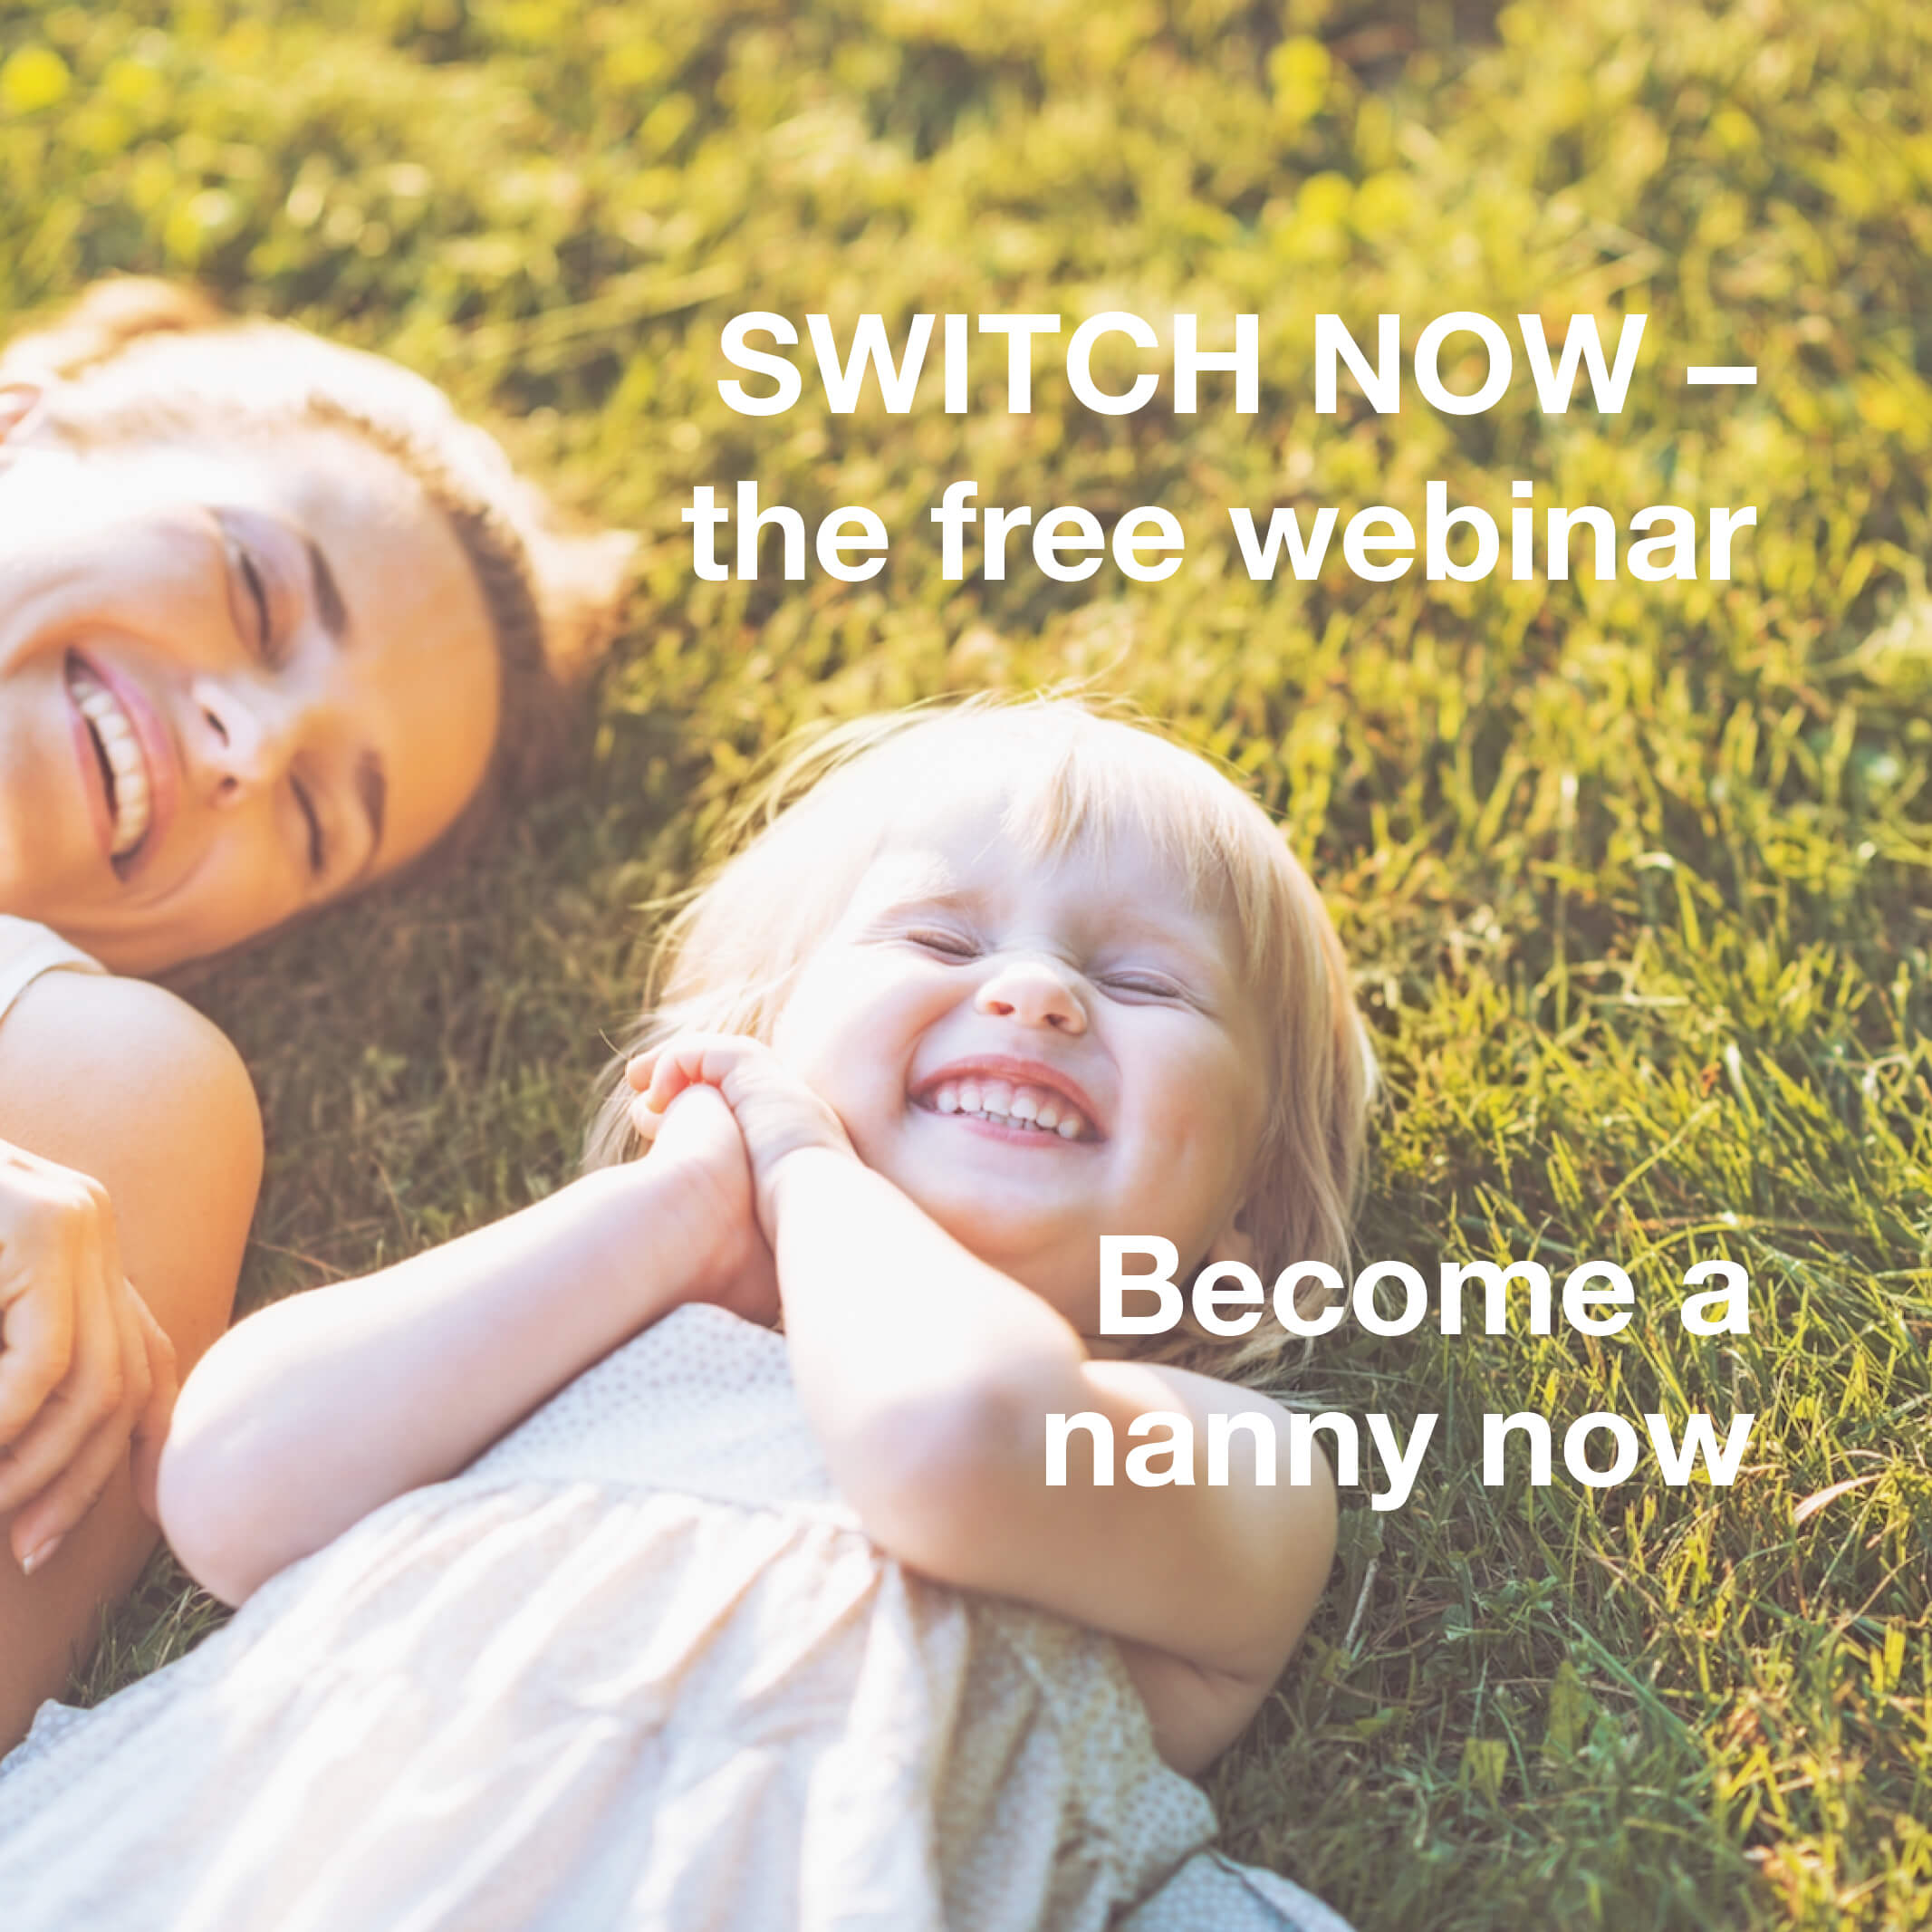 Become a nanny now. Time for change.